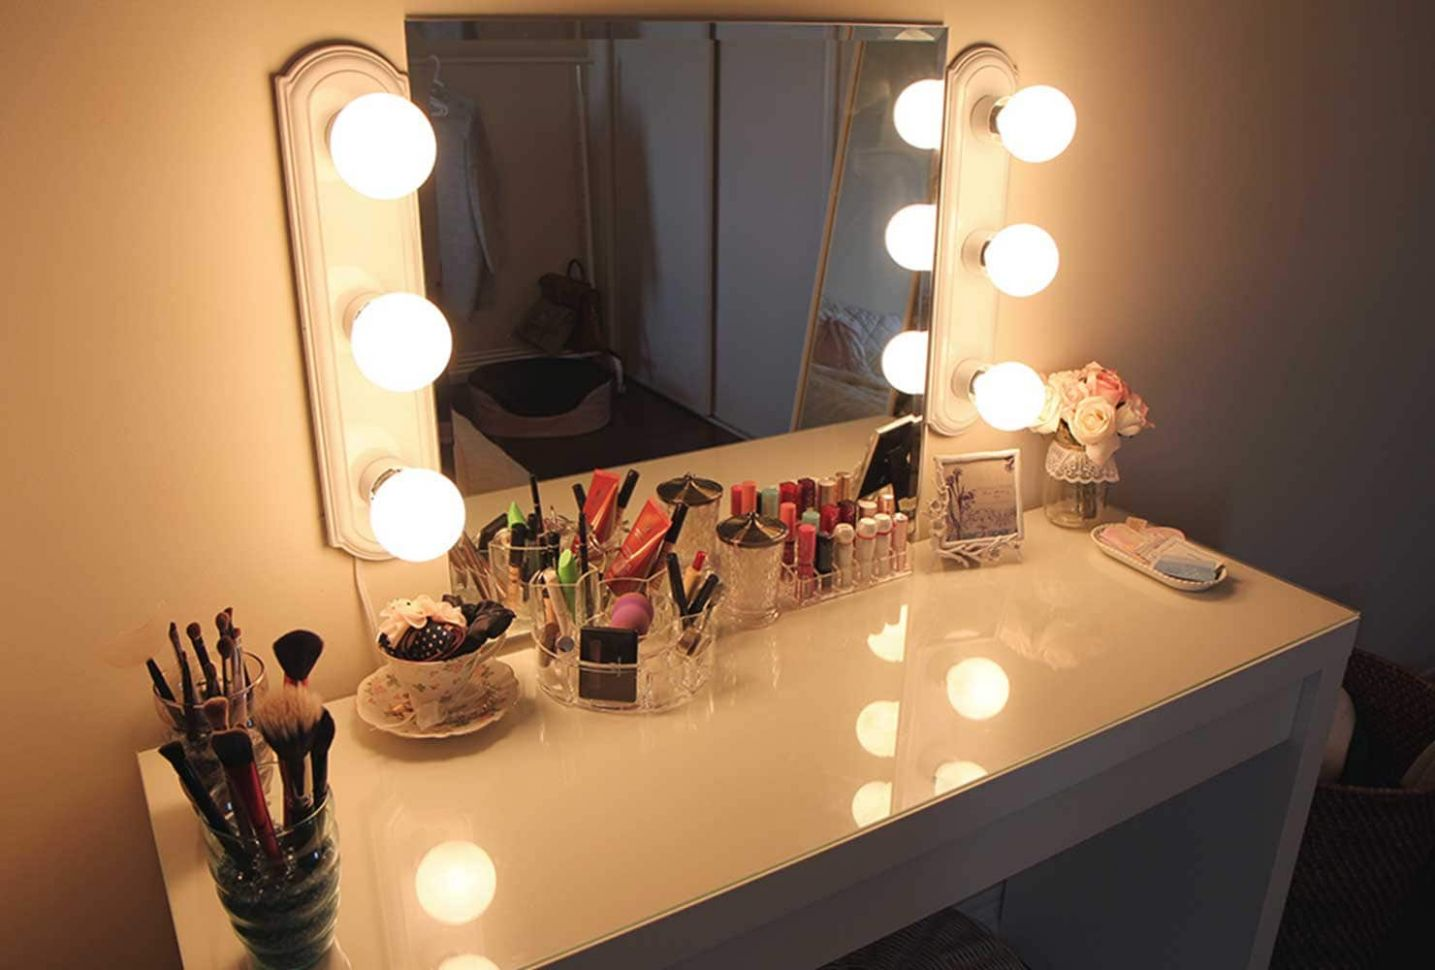 10 Makeup Room Ideas To Brighten Your Morning Routine | Shutterfly - makeup room lights